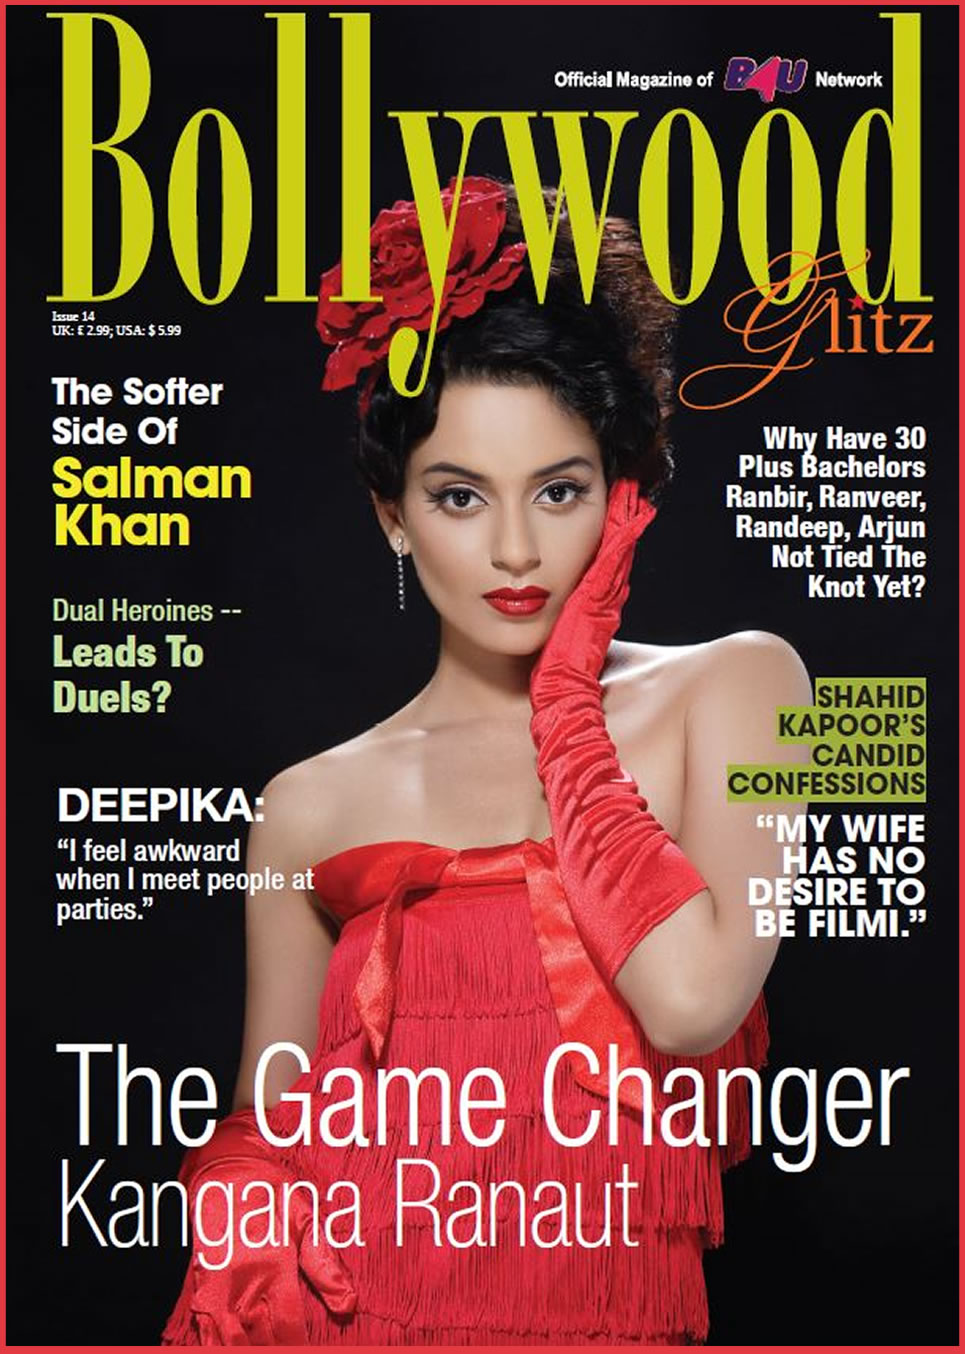 THE COVER STORY WITH KANGANA RANAUT BRINGS IN THE ISSUE NO. 14 OF BOLLYWOOD GLITZ!